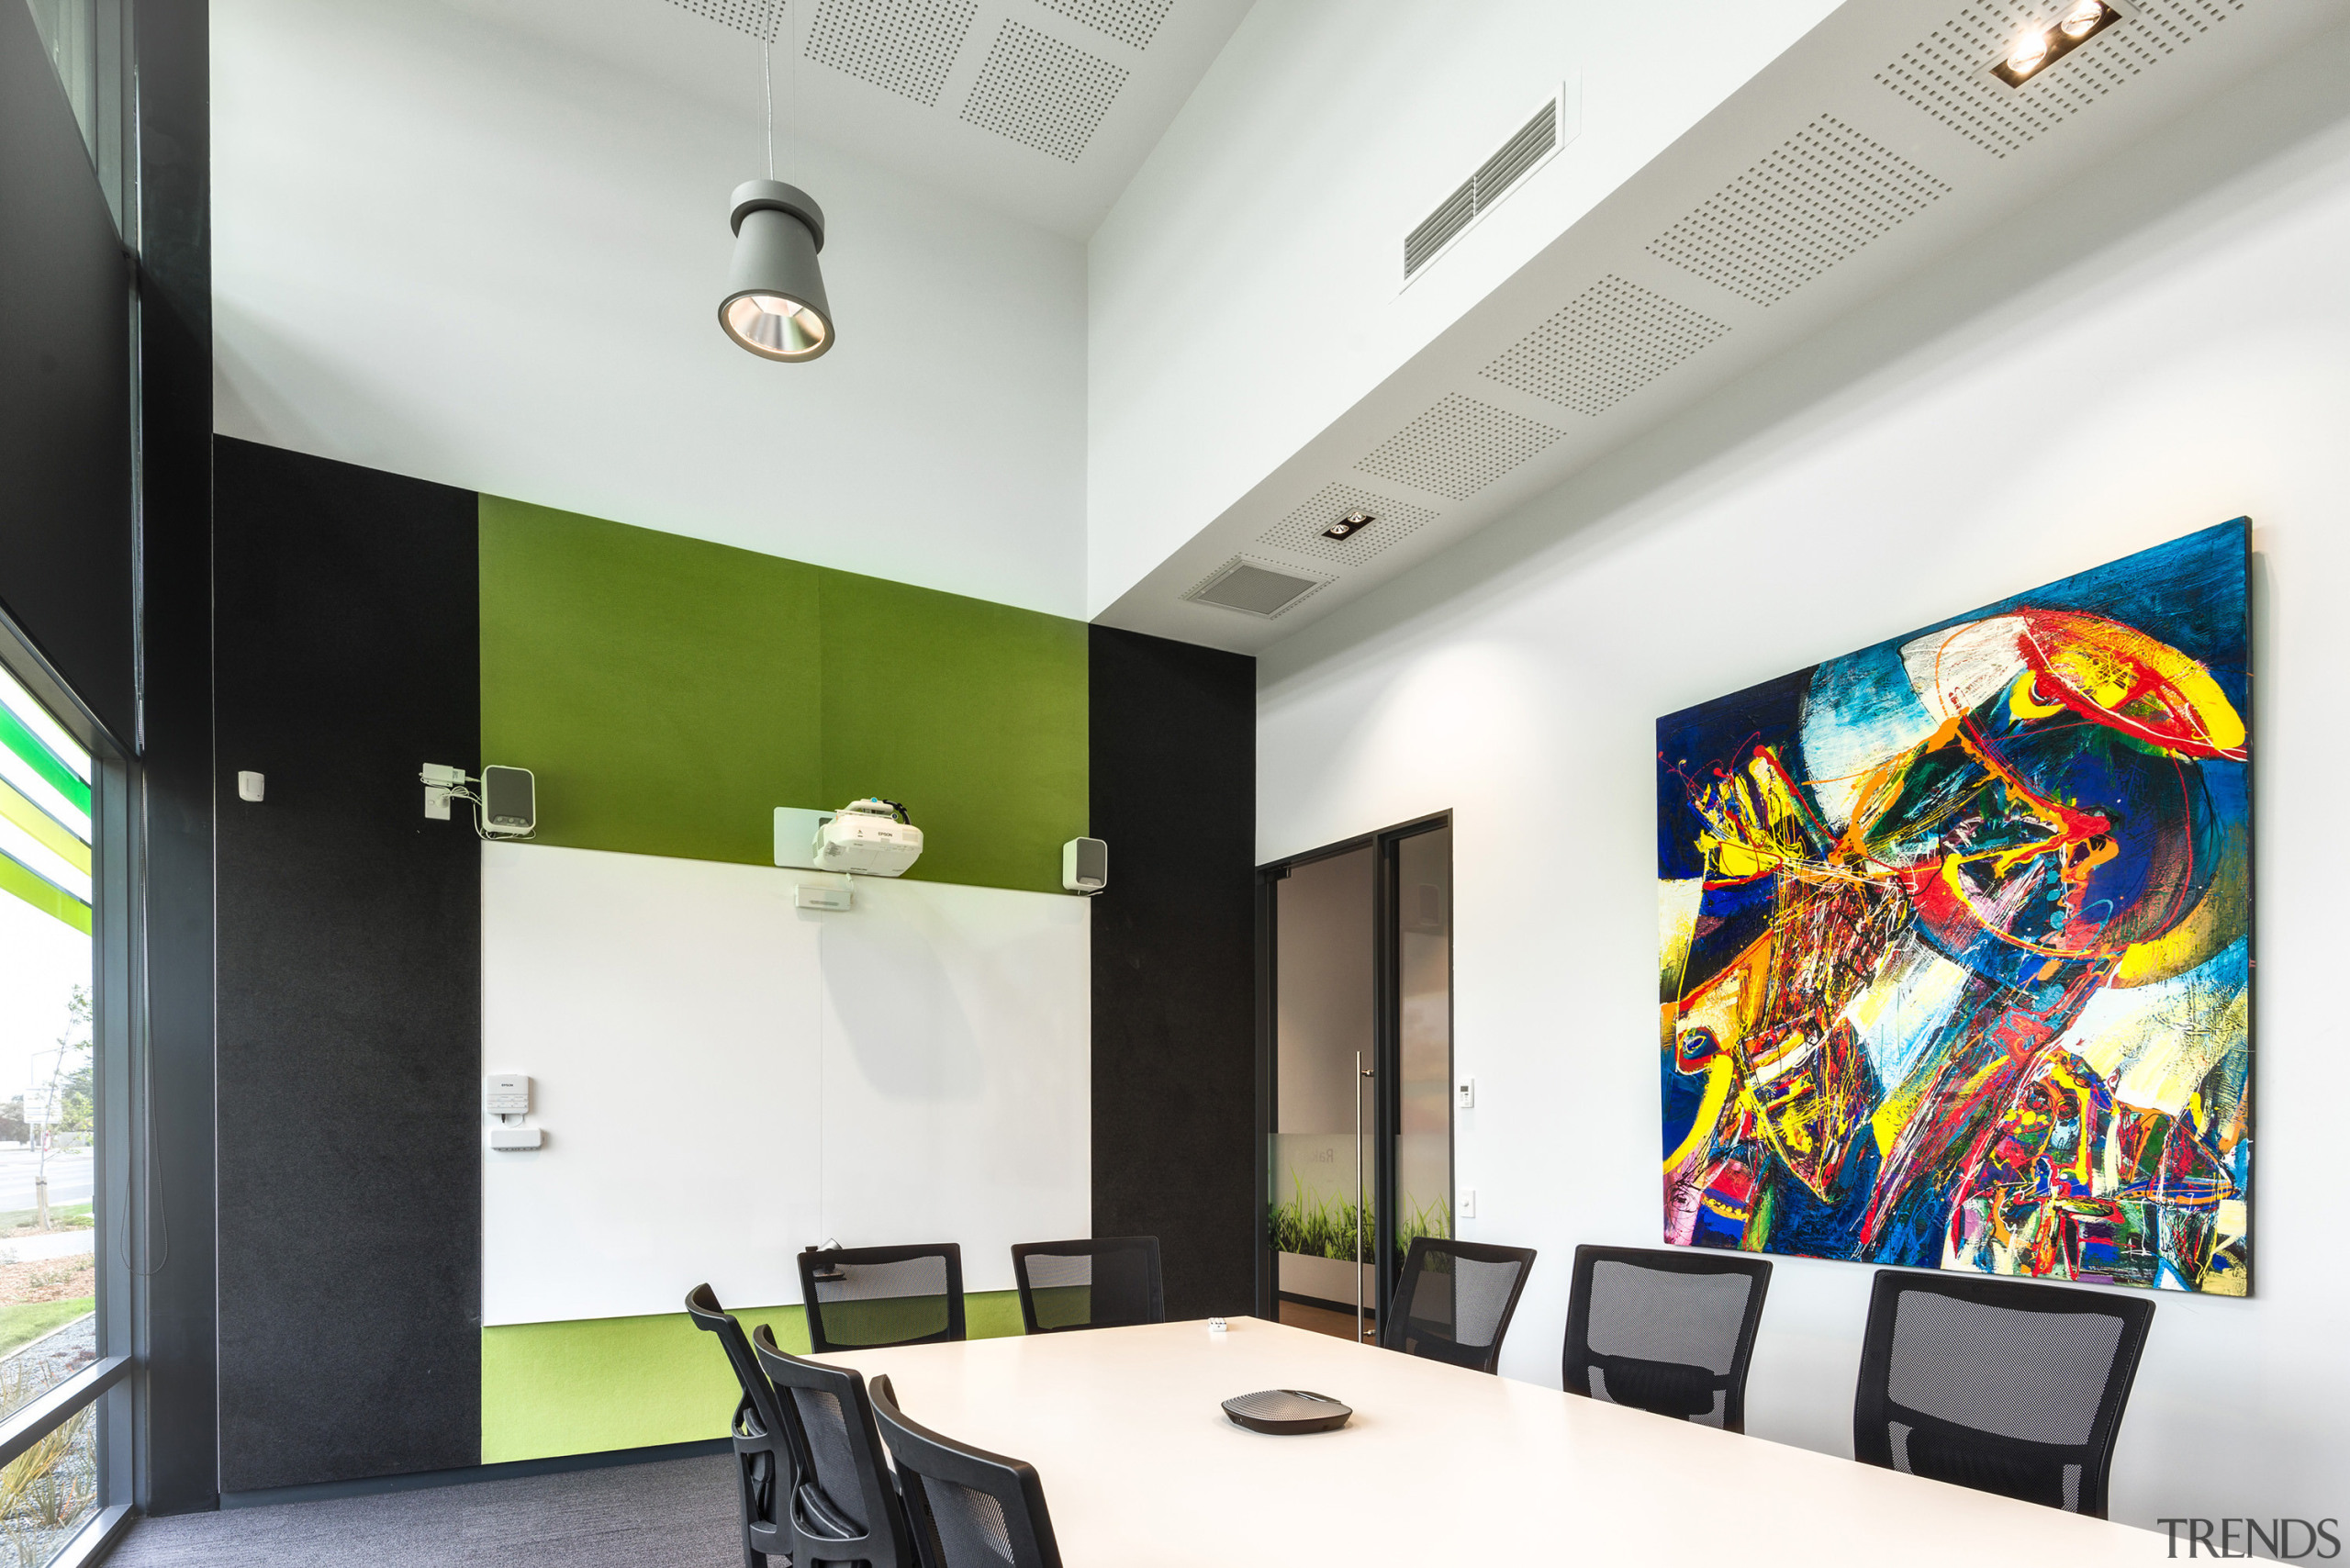 For this project by Stufkens + Chambers Architects, ceiling, interior design, white